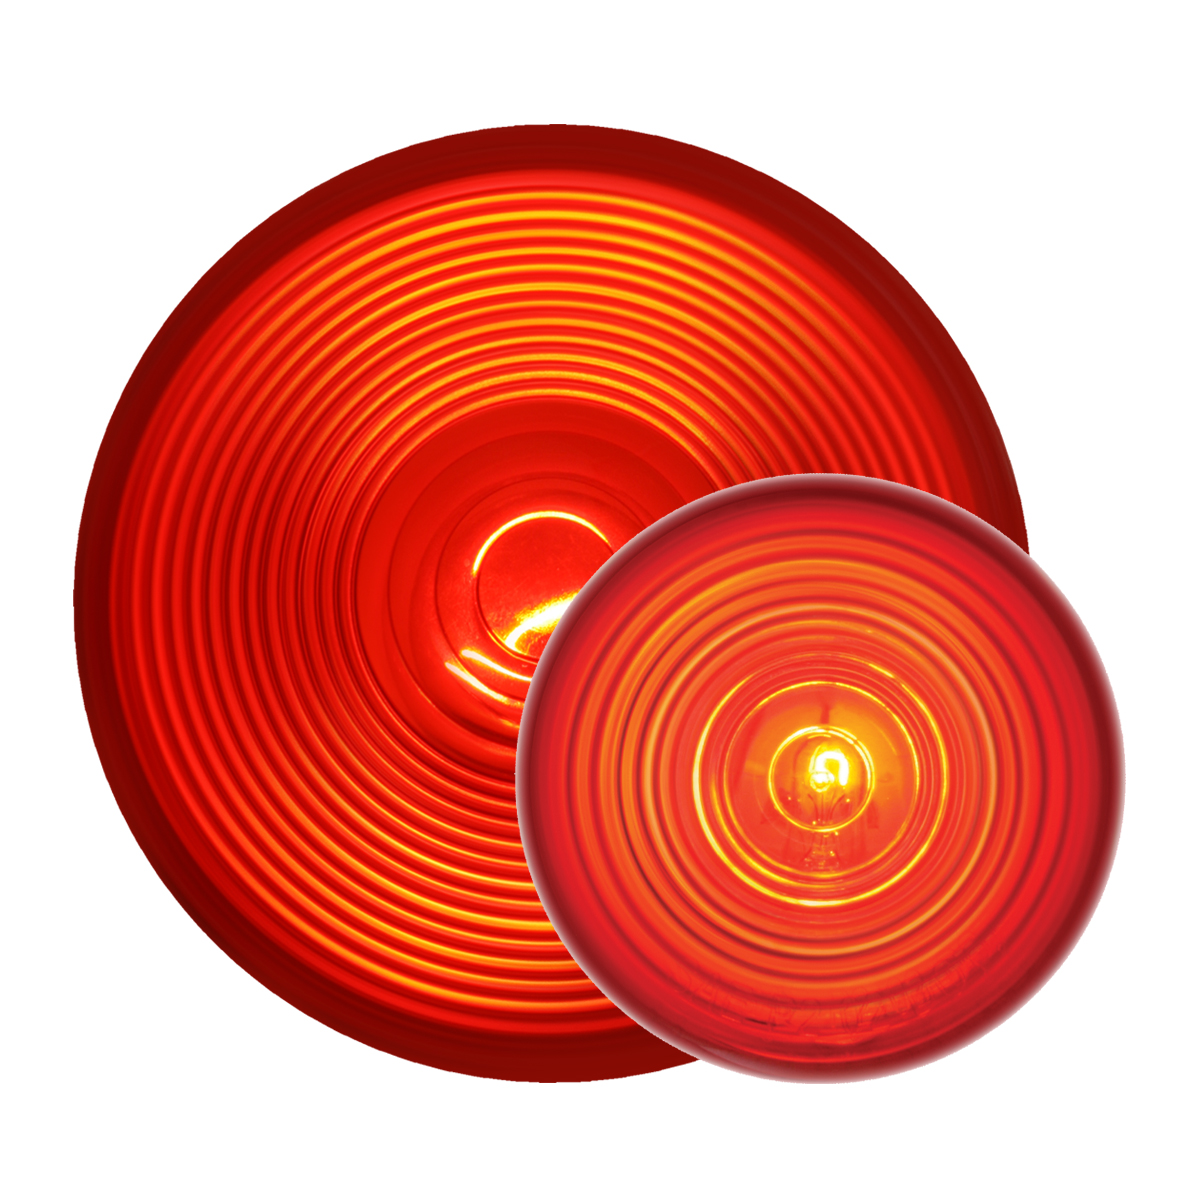 #80471/78315 Incandescent Flat - Red/Red